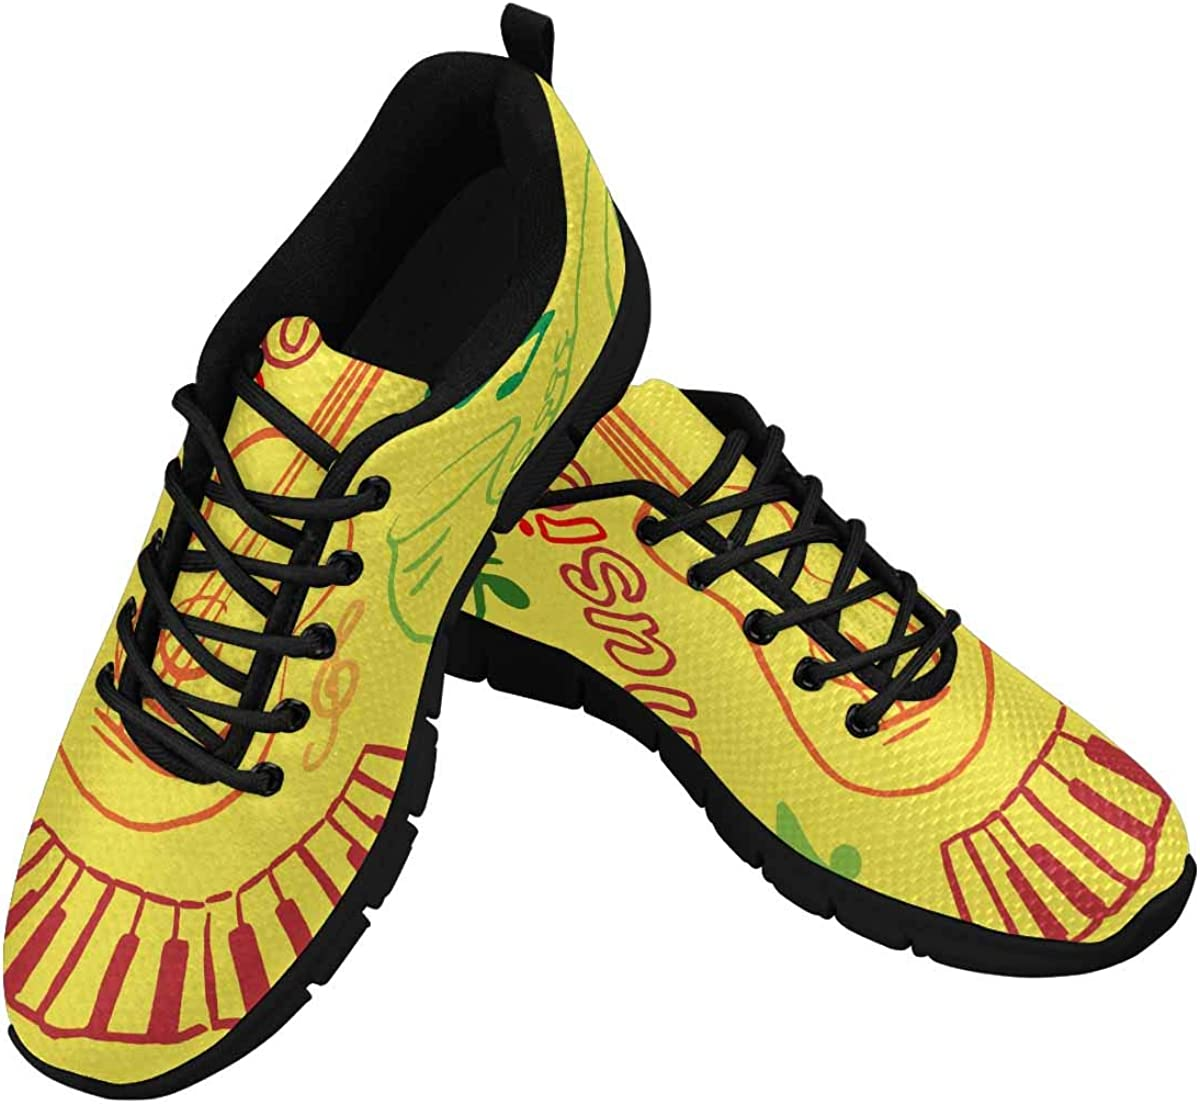 INTERESTPRINT Music with Yellow Background Women's Running Shoes Mesh Breathable Sports Casual Shoes